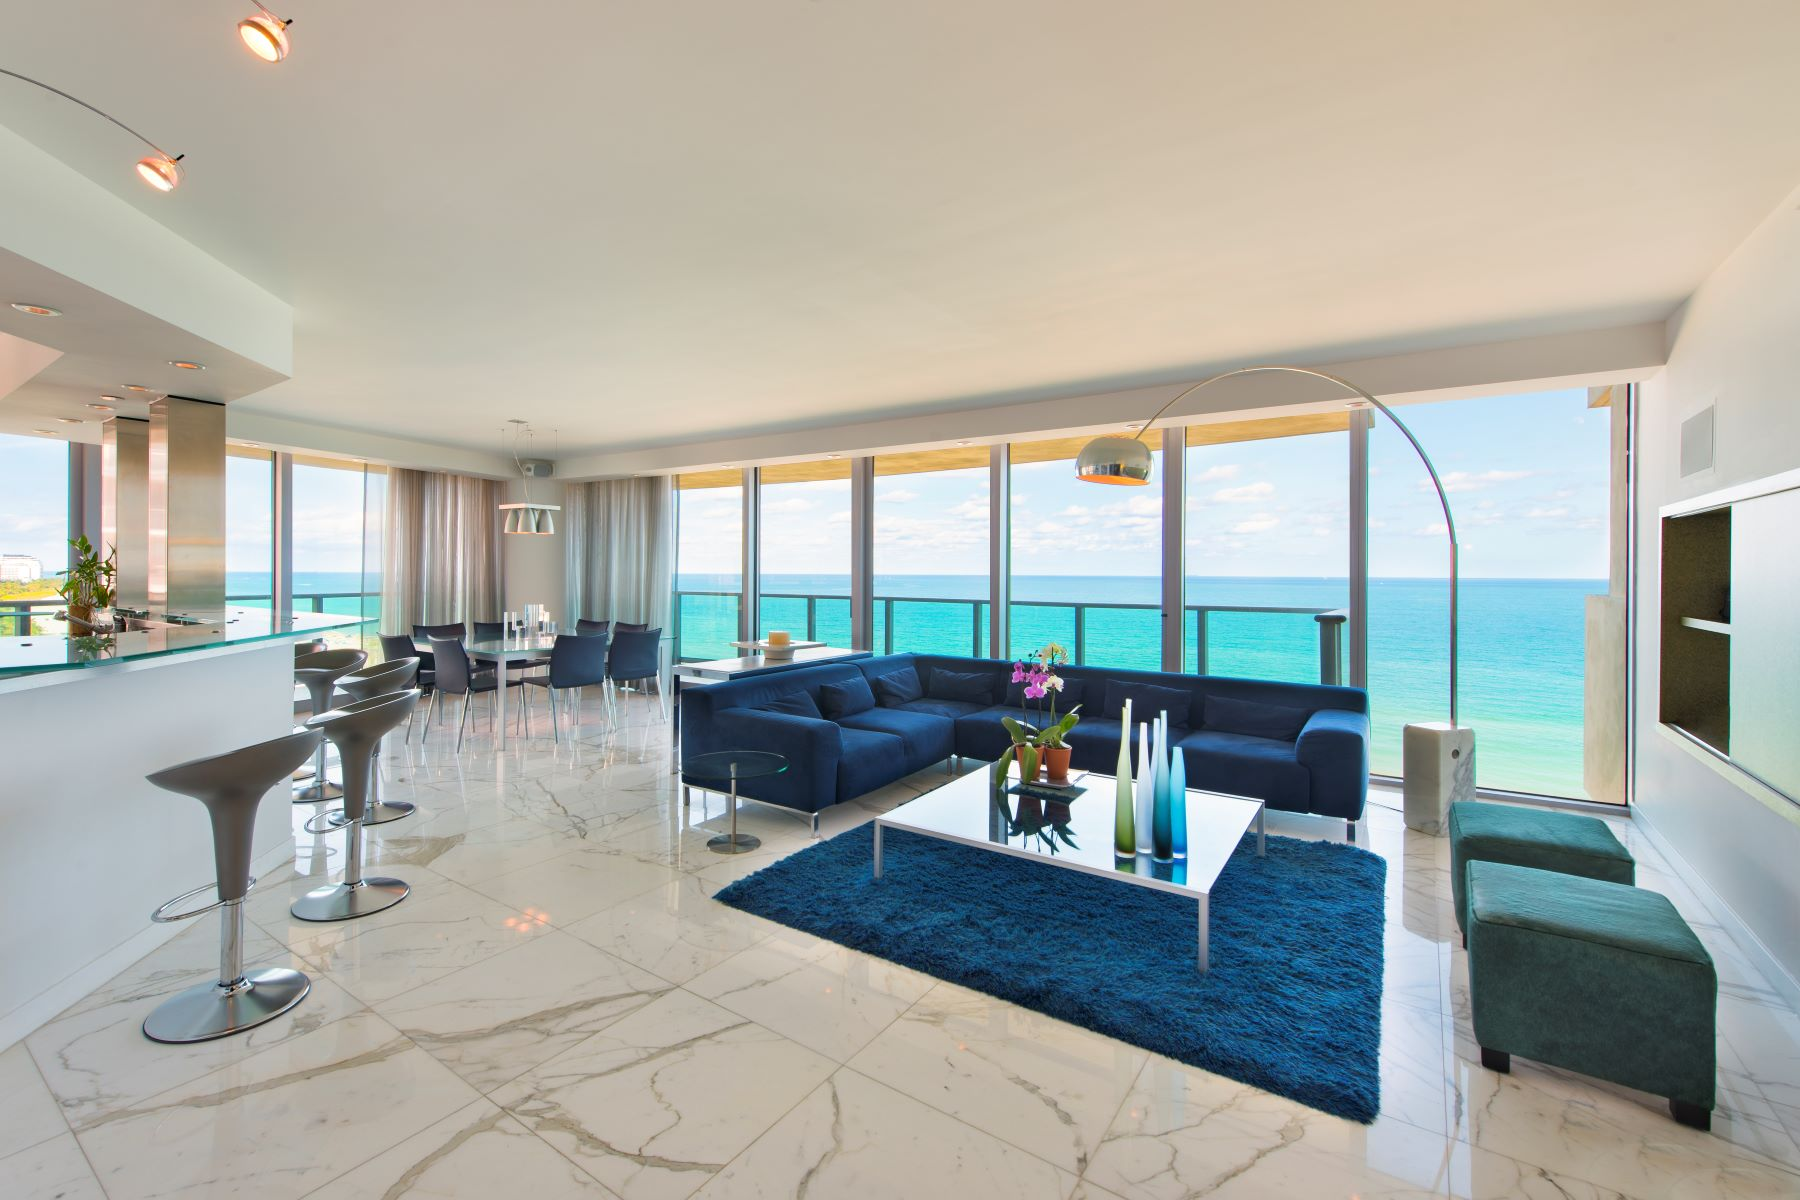 Condominium for Rent at 1455 Ocean Dr #1509 1455 Ocean Dr 1509 Miami Beach, Florida 33139 United States